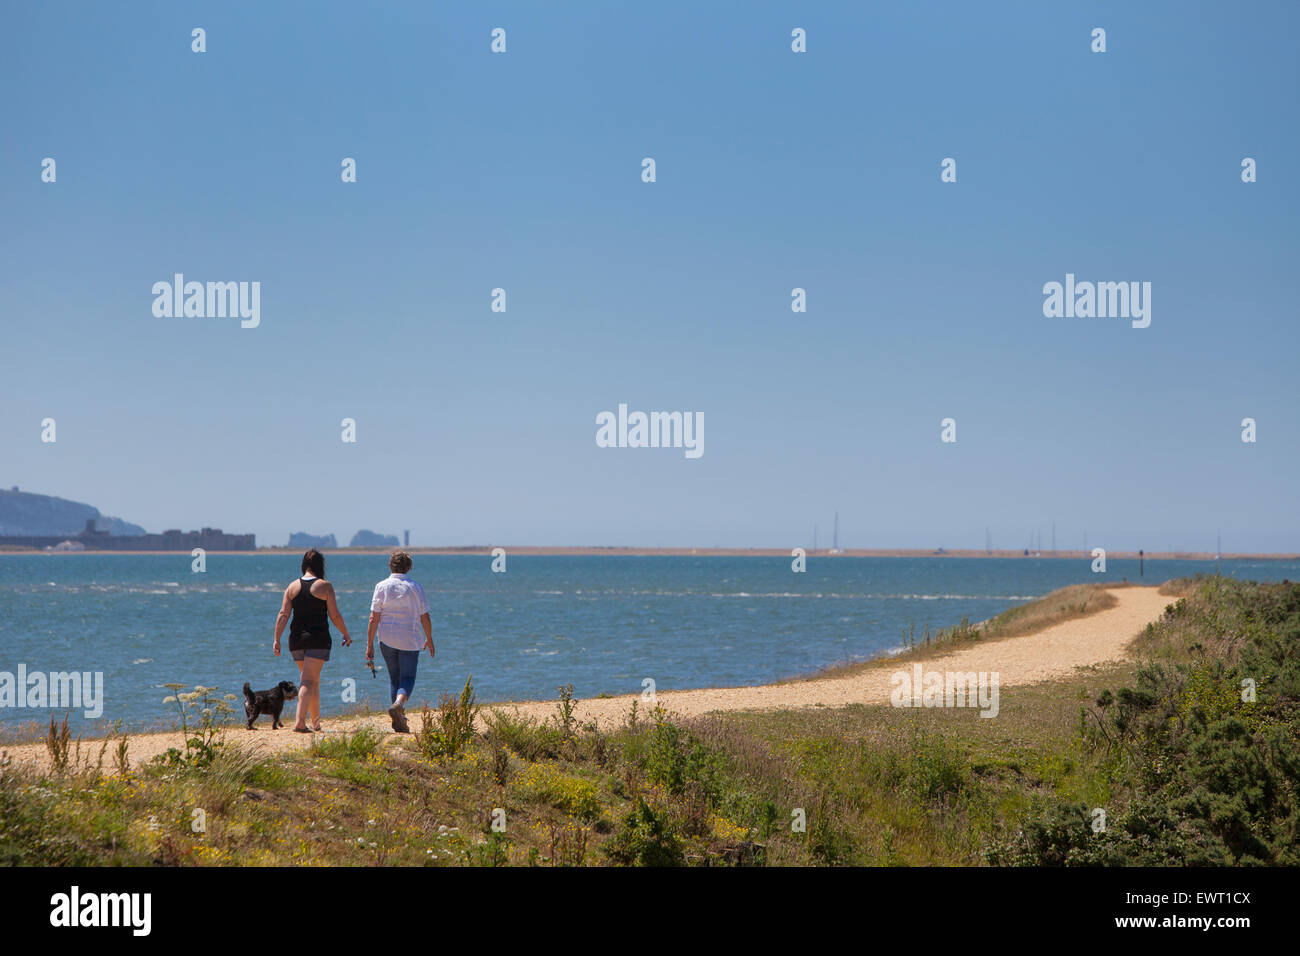 Dog Walkers on the Solent Way between Lymington and Keyhaven - Stock Image